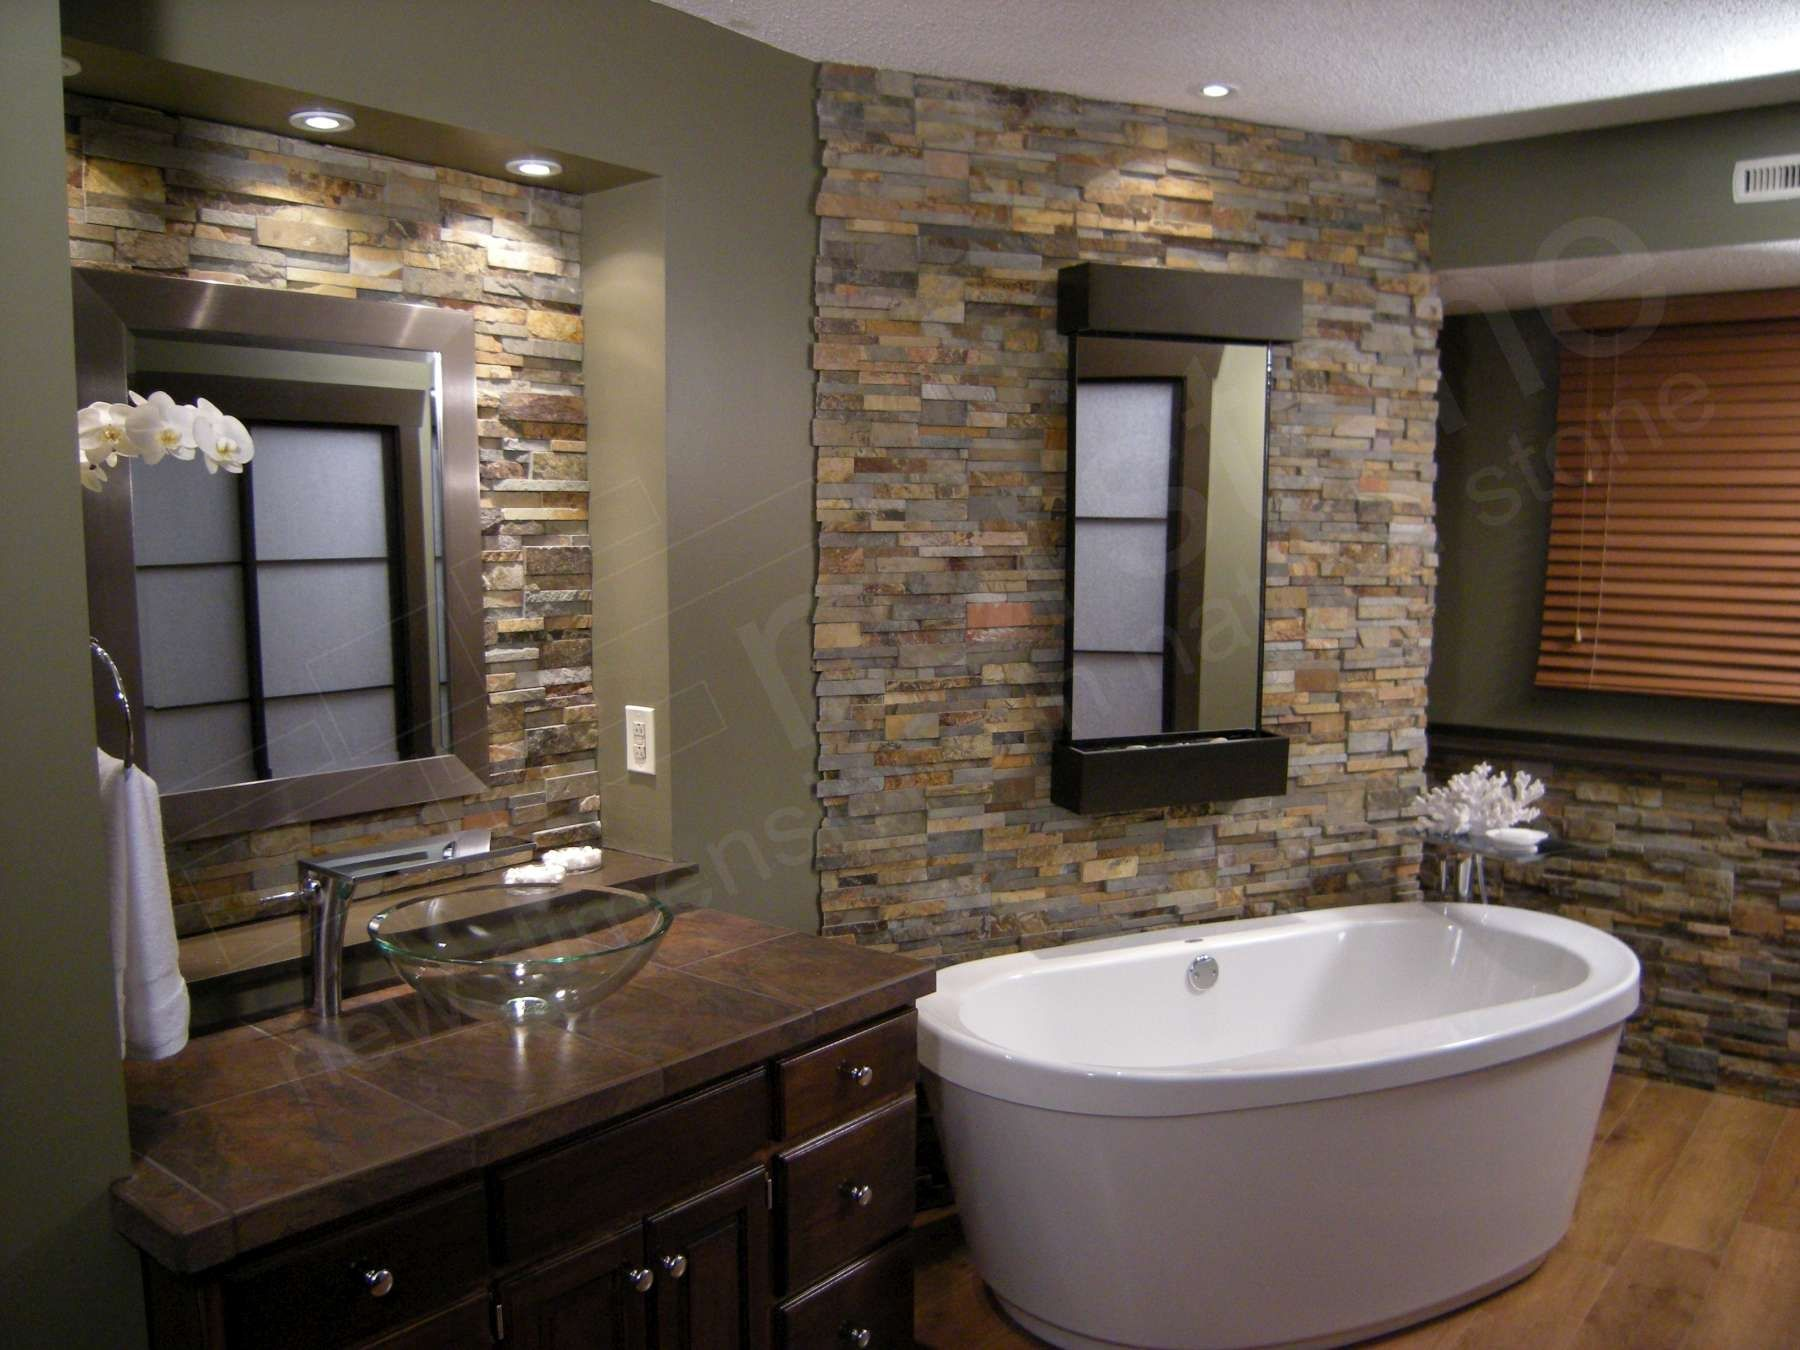 Stone Wall Bathroom Ideas Stone On The Walls Gives This Bathroom - Wall paneling for bathroom for bathroom decor ideas